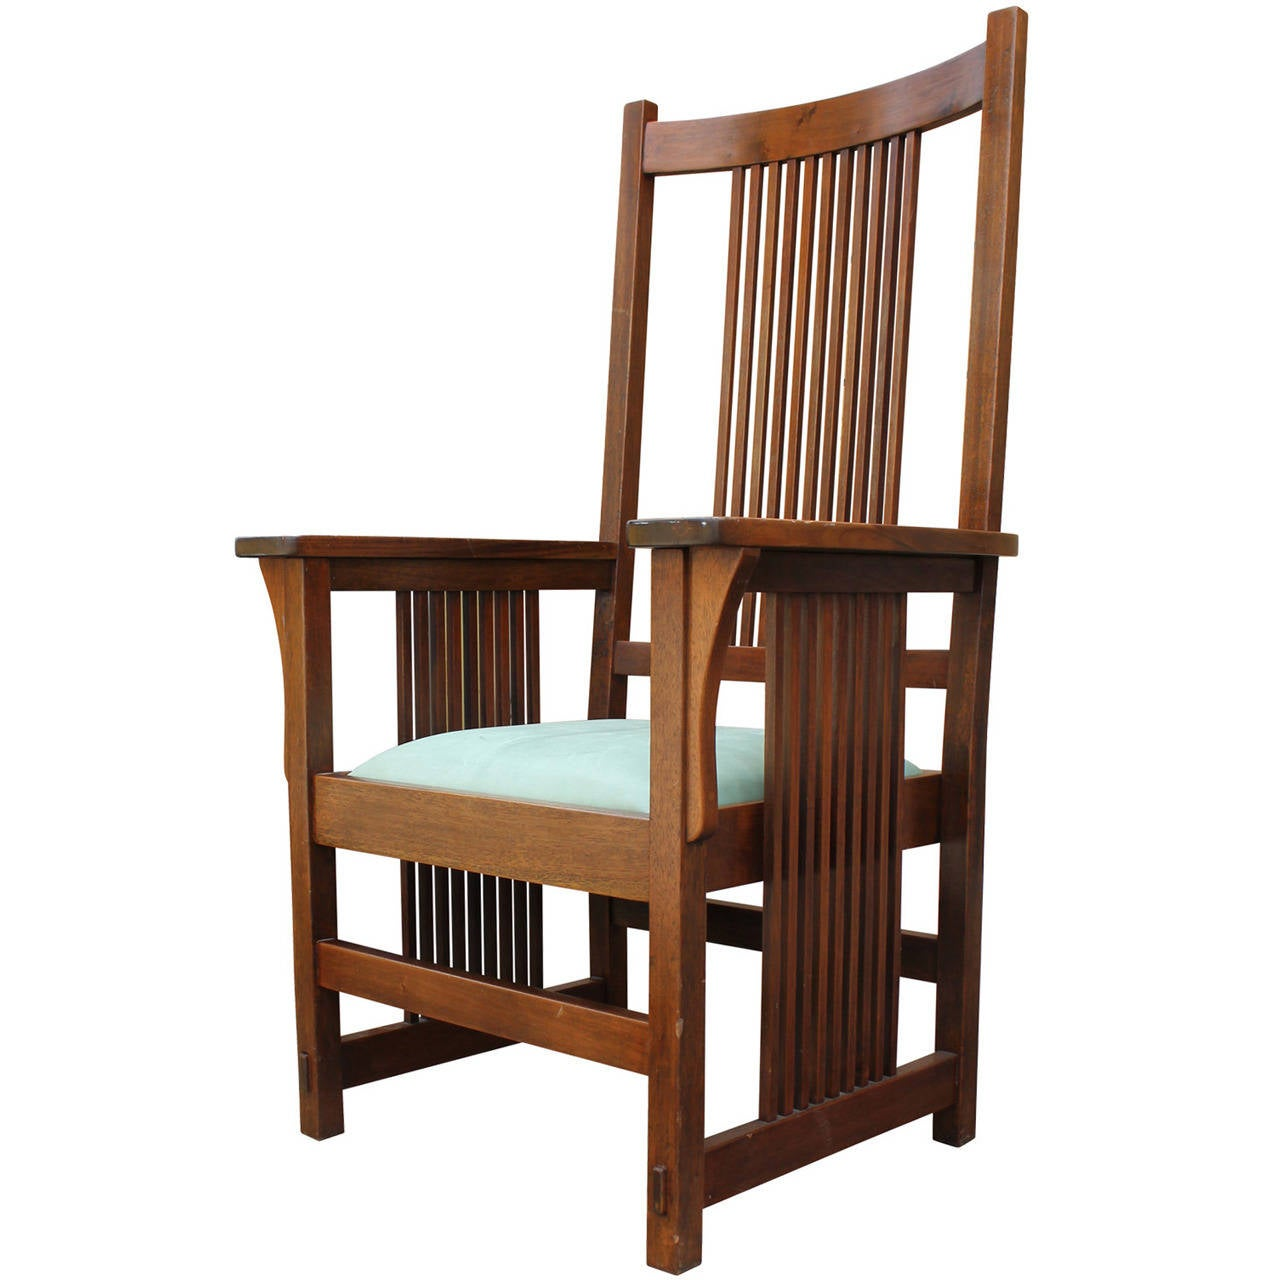 Frank Lloyd Wright Style Armchair At 1stdibs